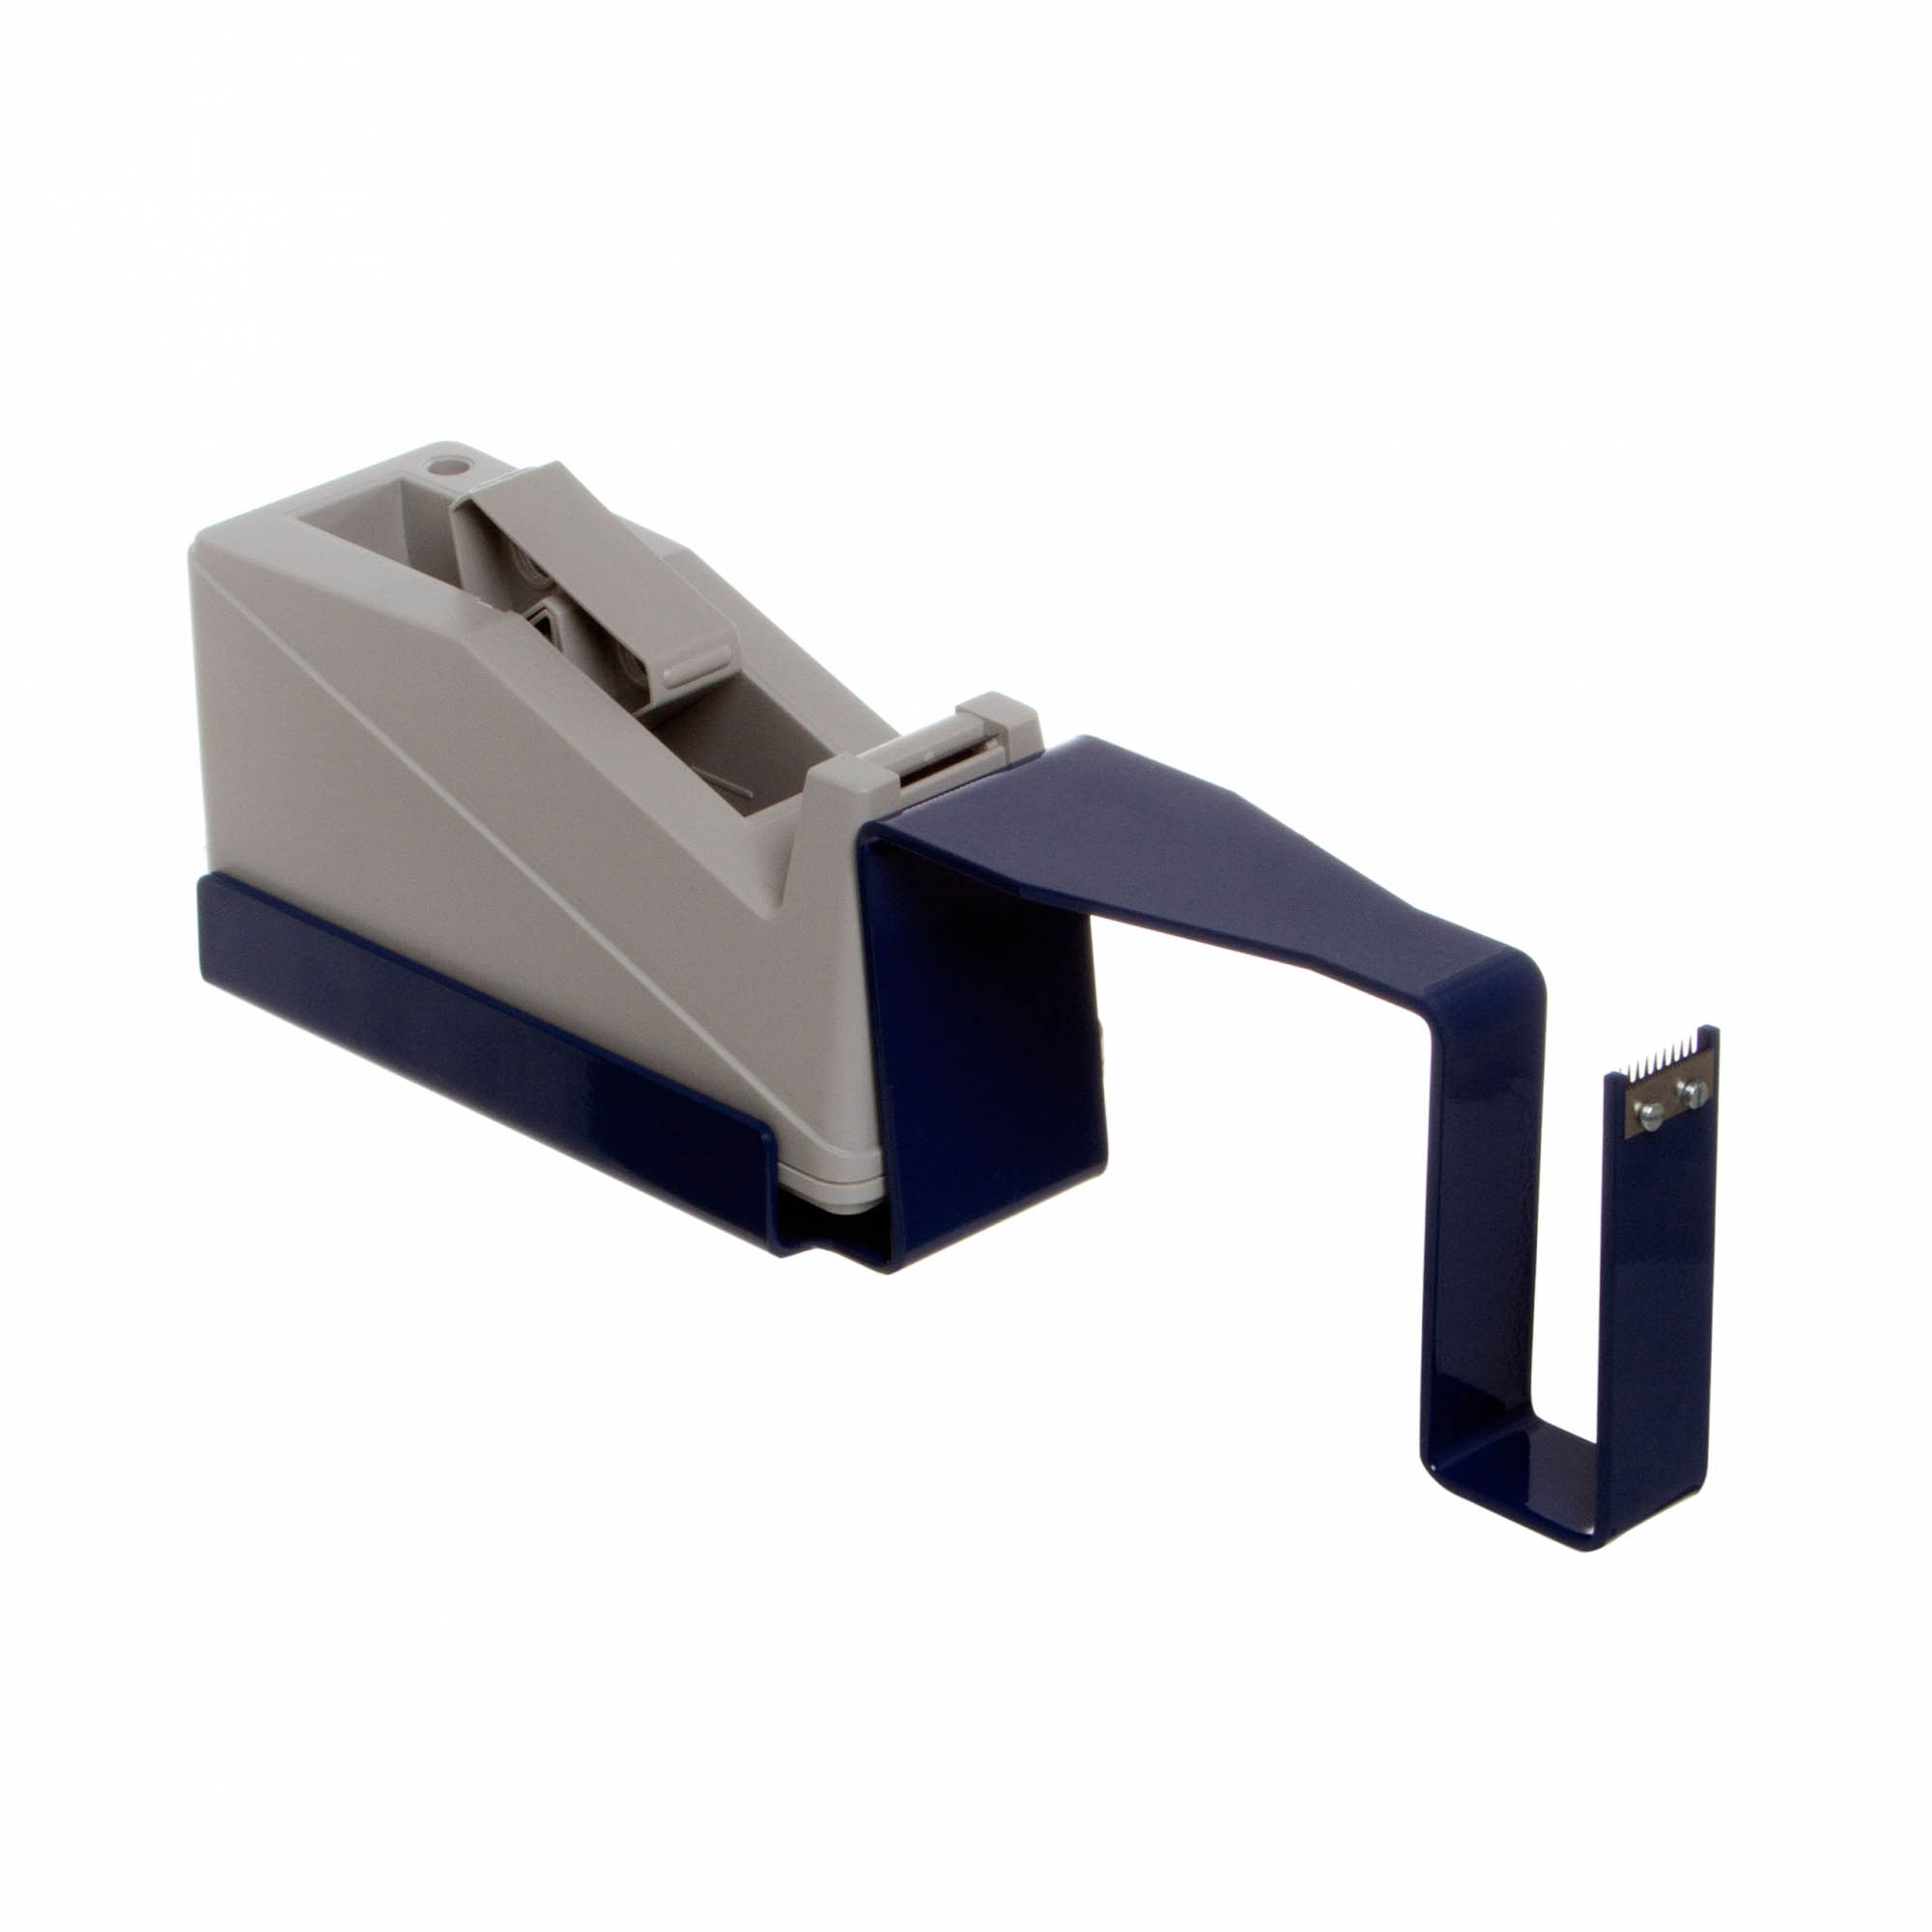 Tape Dispenser with Extension